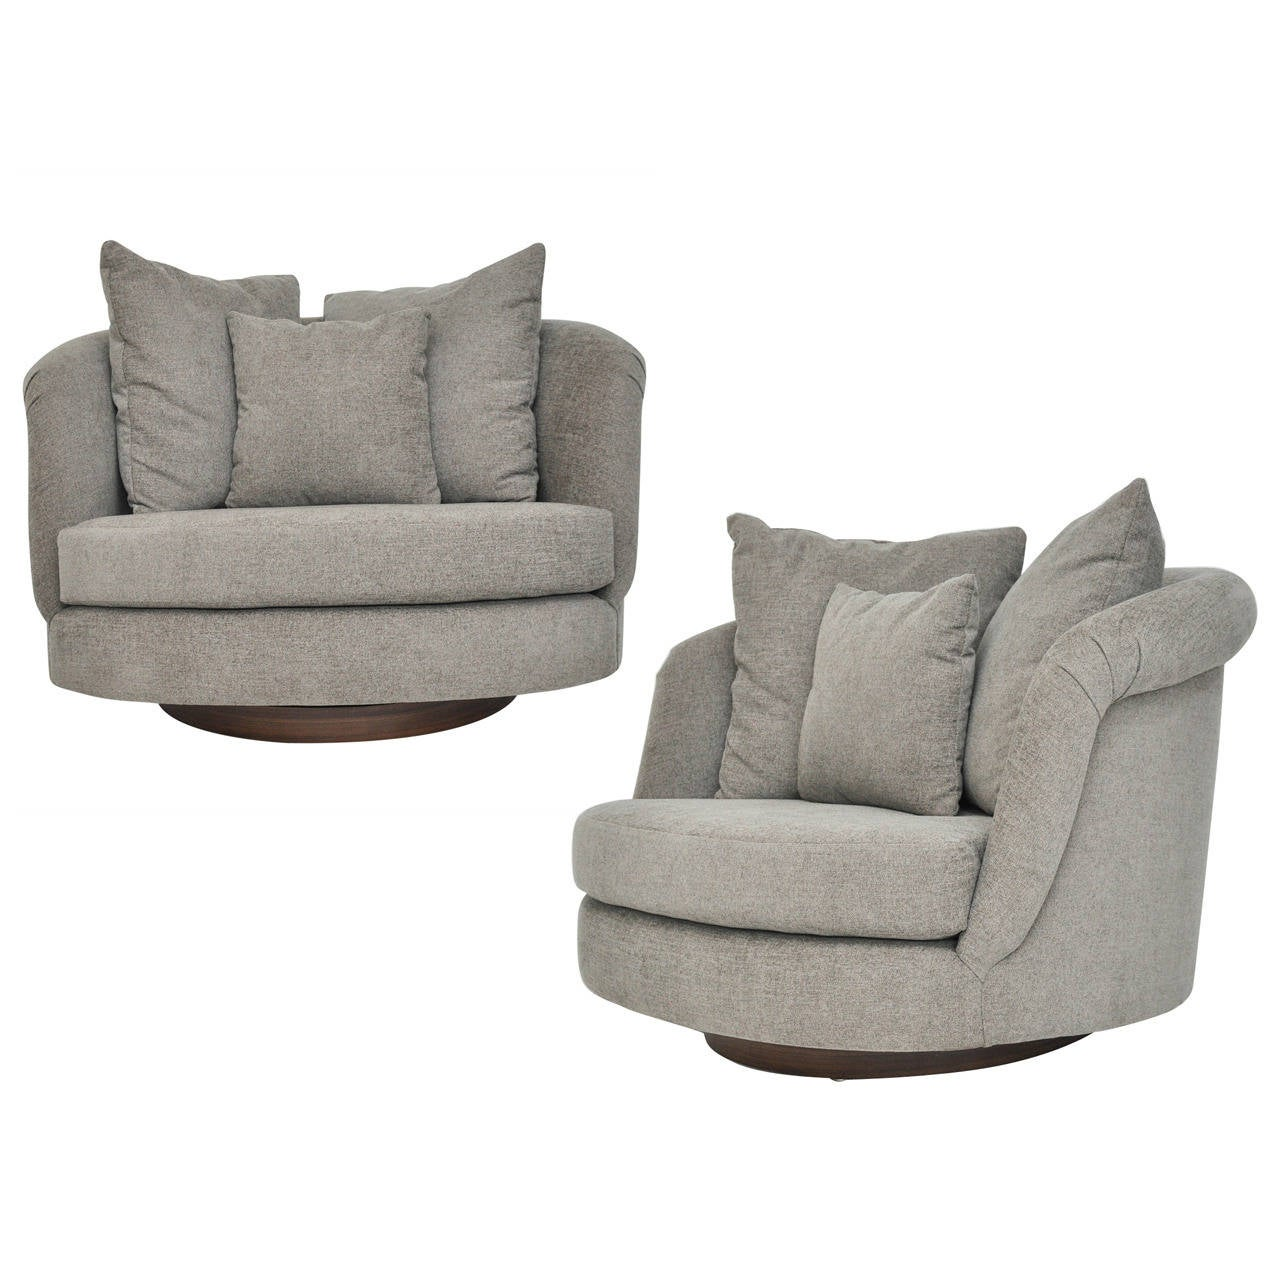 swivel chair large hanging with stand debenhams pair of milo baughman chairs for sale at 1stdibs